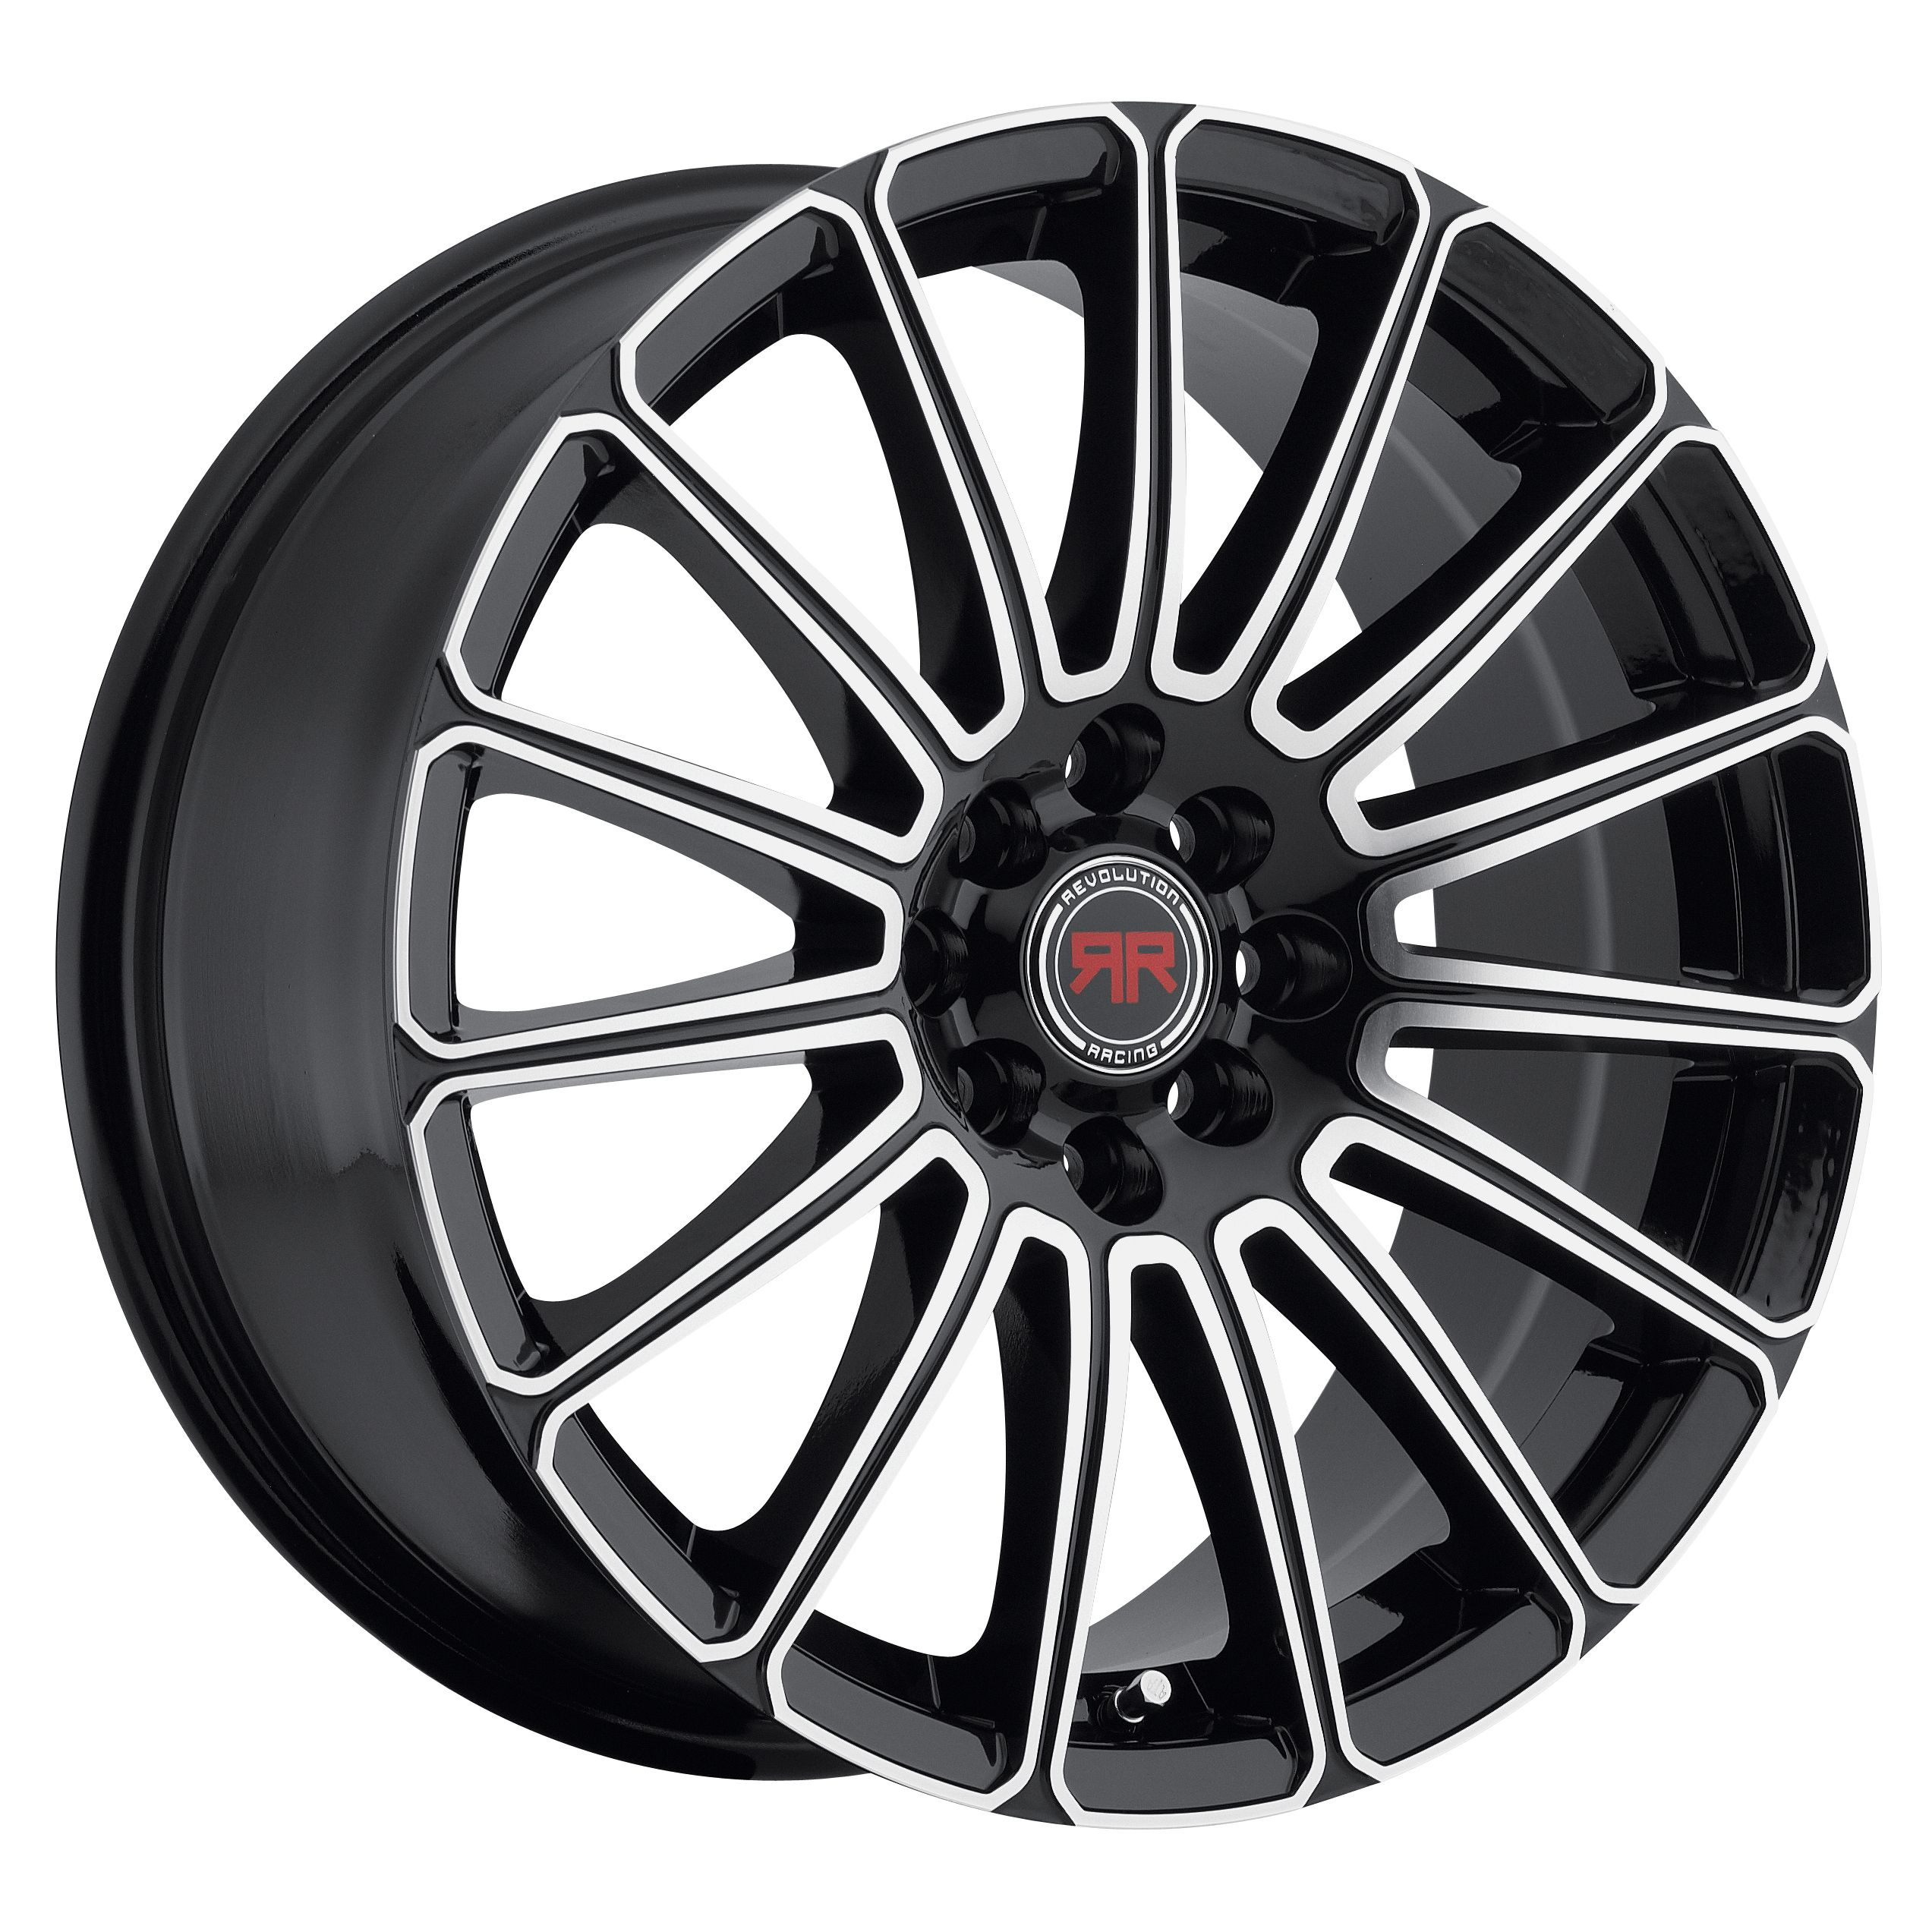 Revolution Racing Wheels Racing Wheel Wheel And Tire Packages Rims For Cars